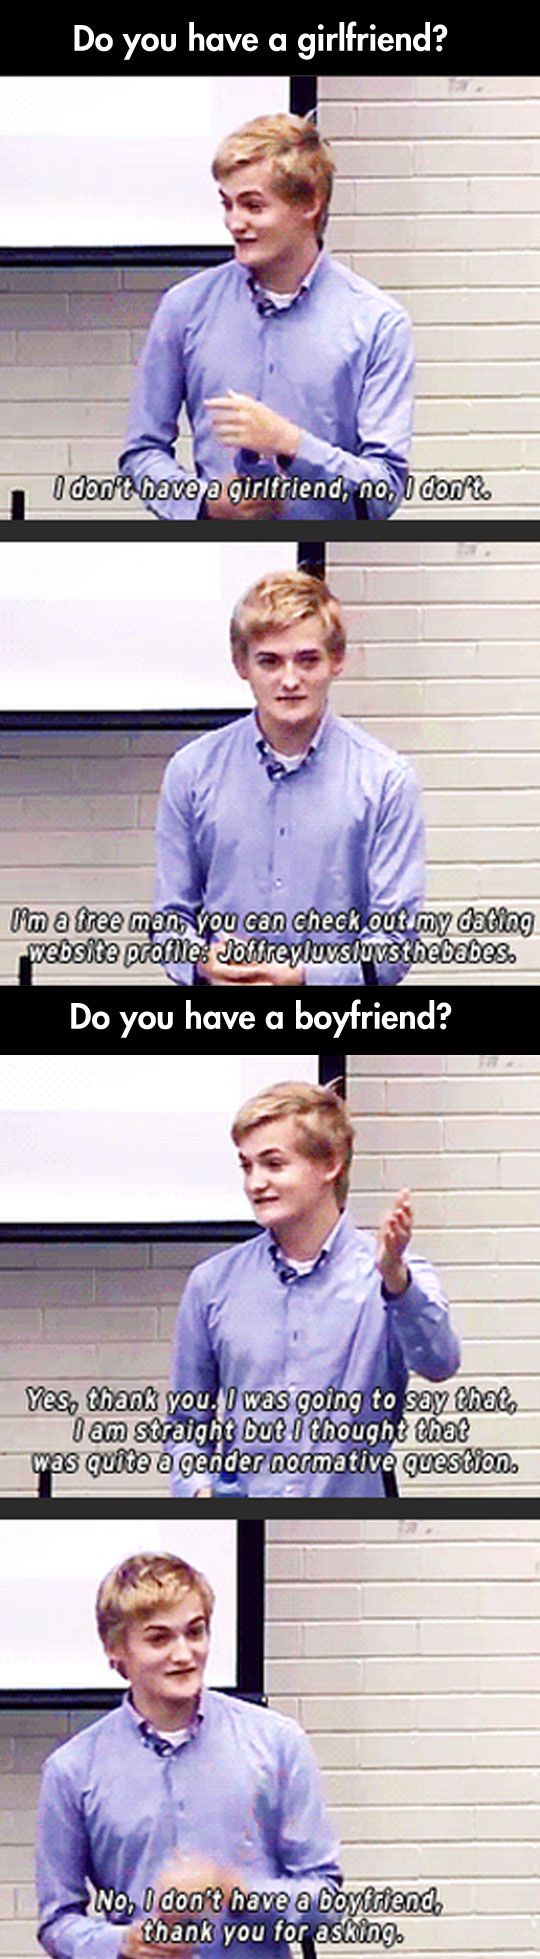 Round of applause for Jack Gleeson, ladies and gents.